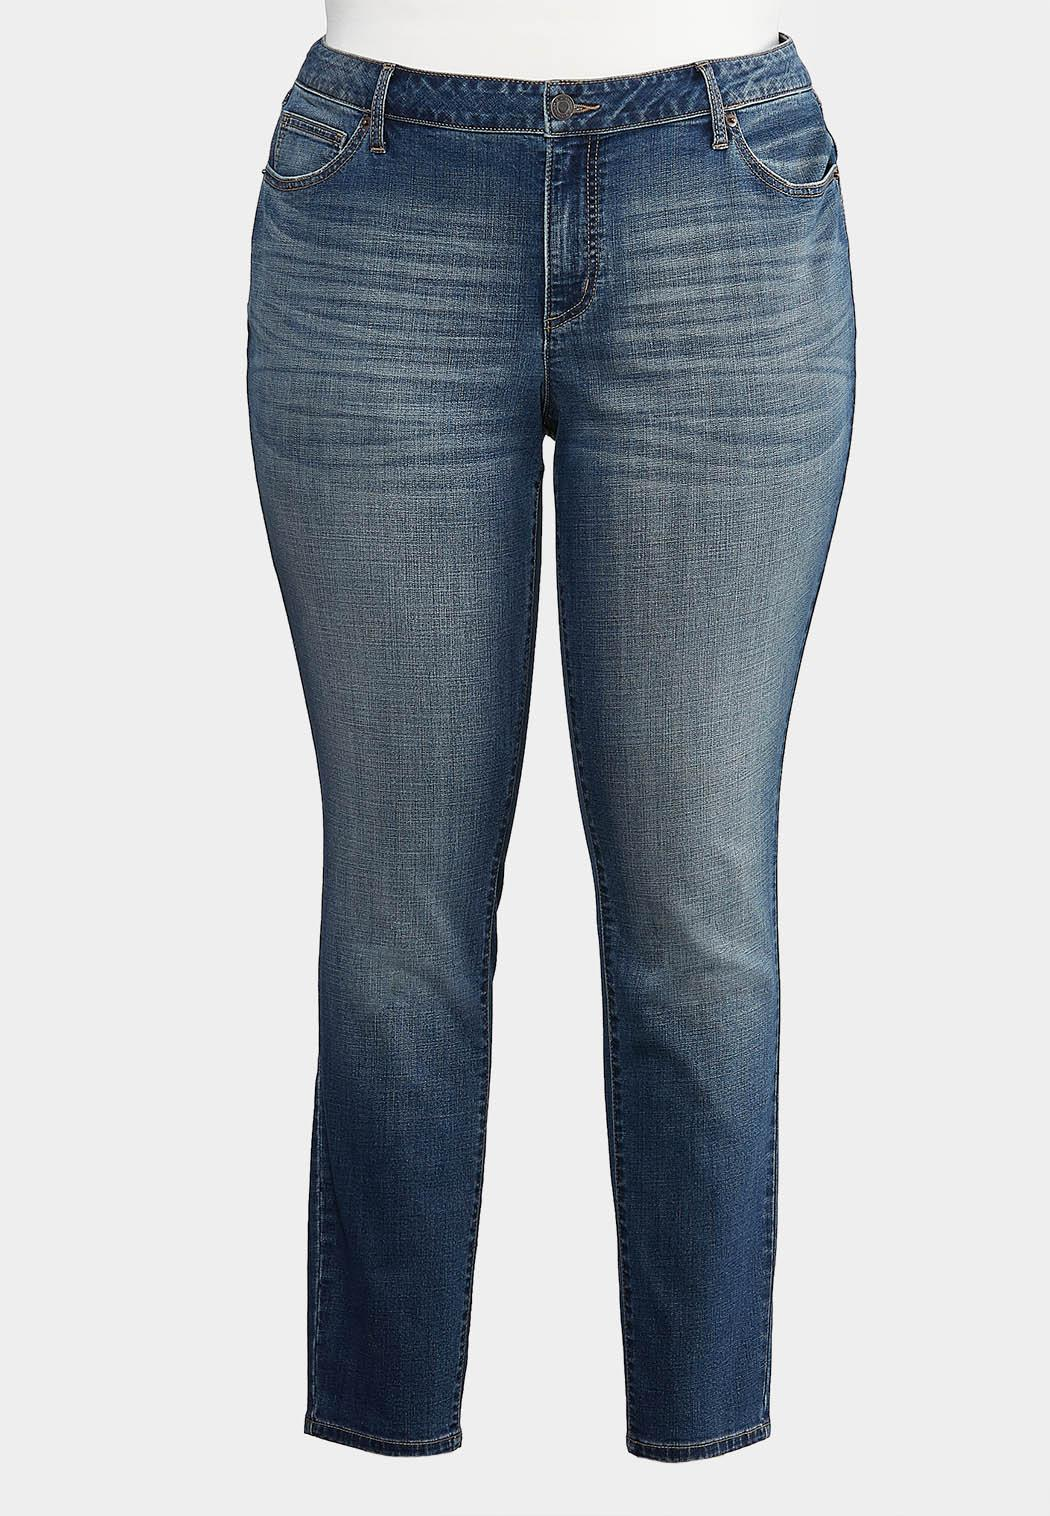 Plus Size Curvy Washed Skinny Jeans